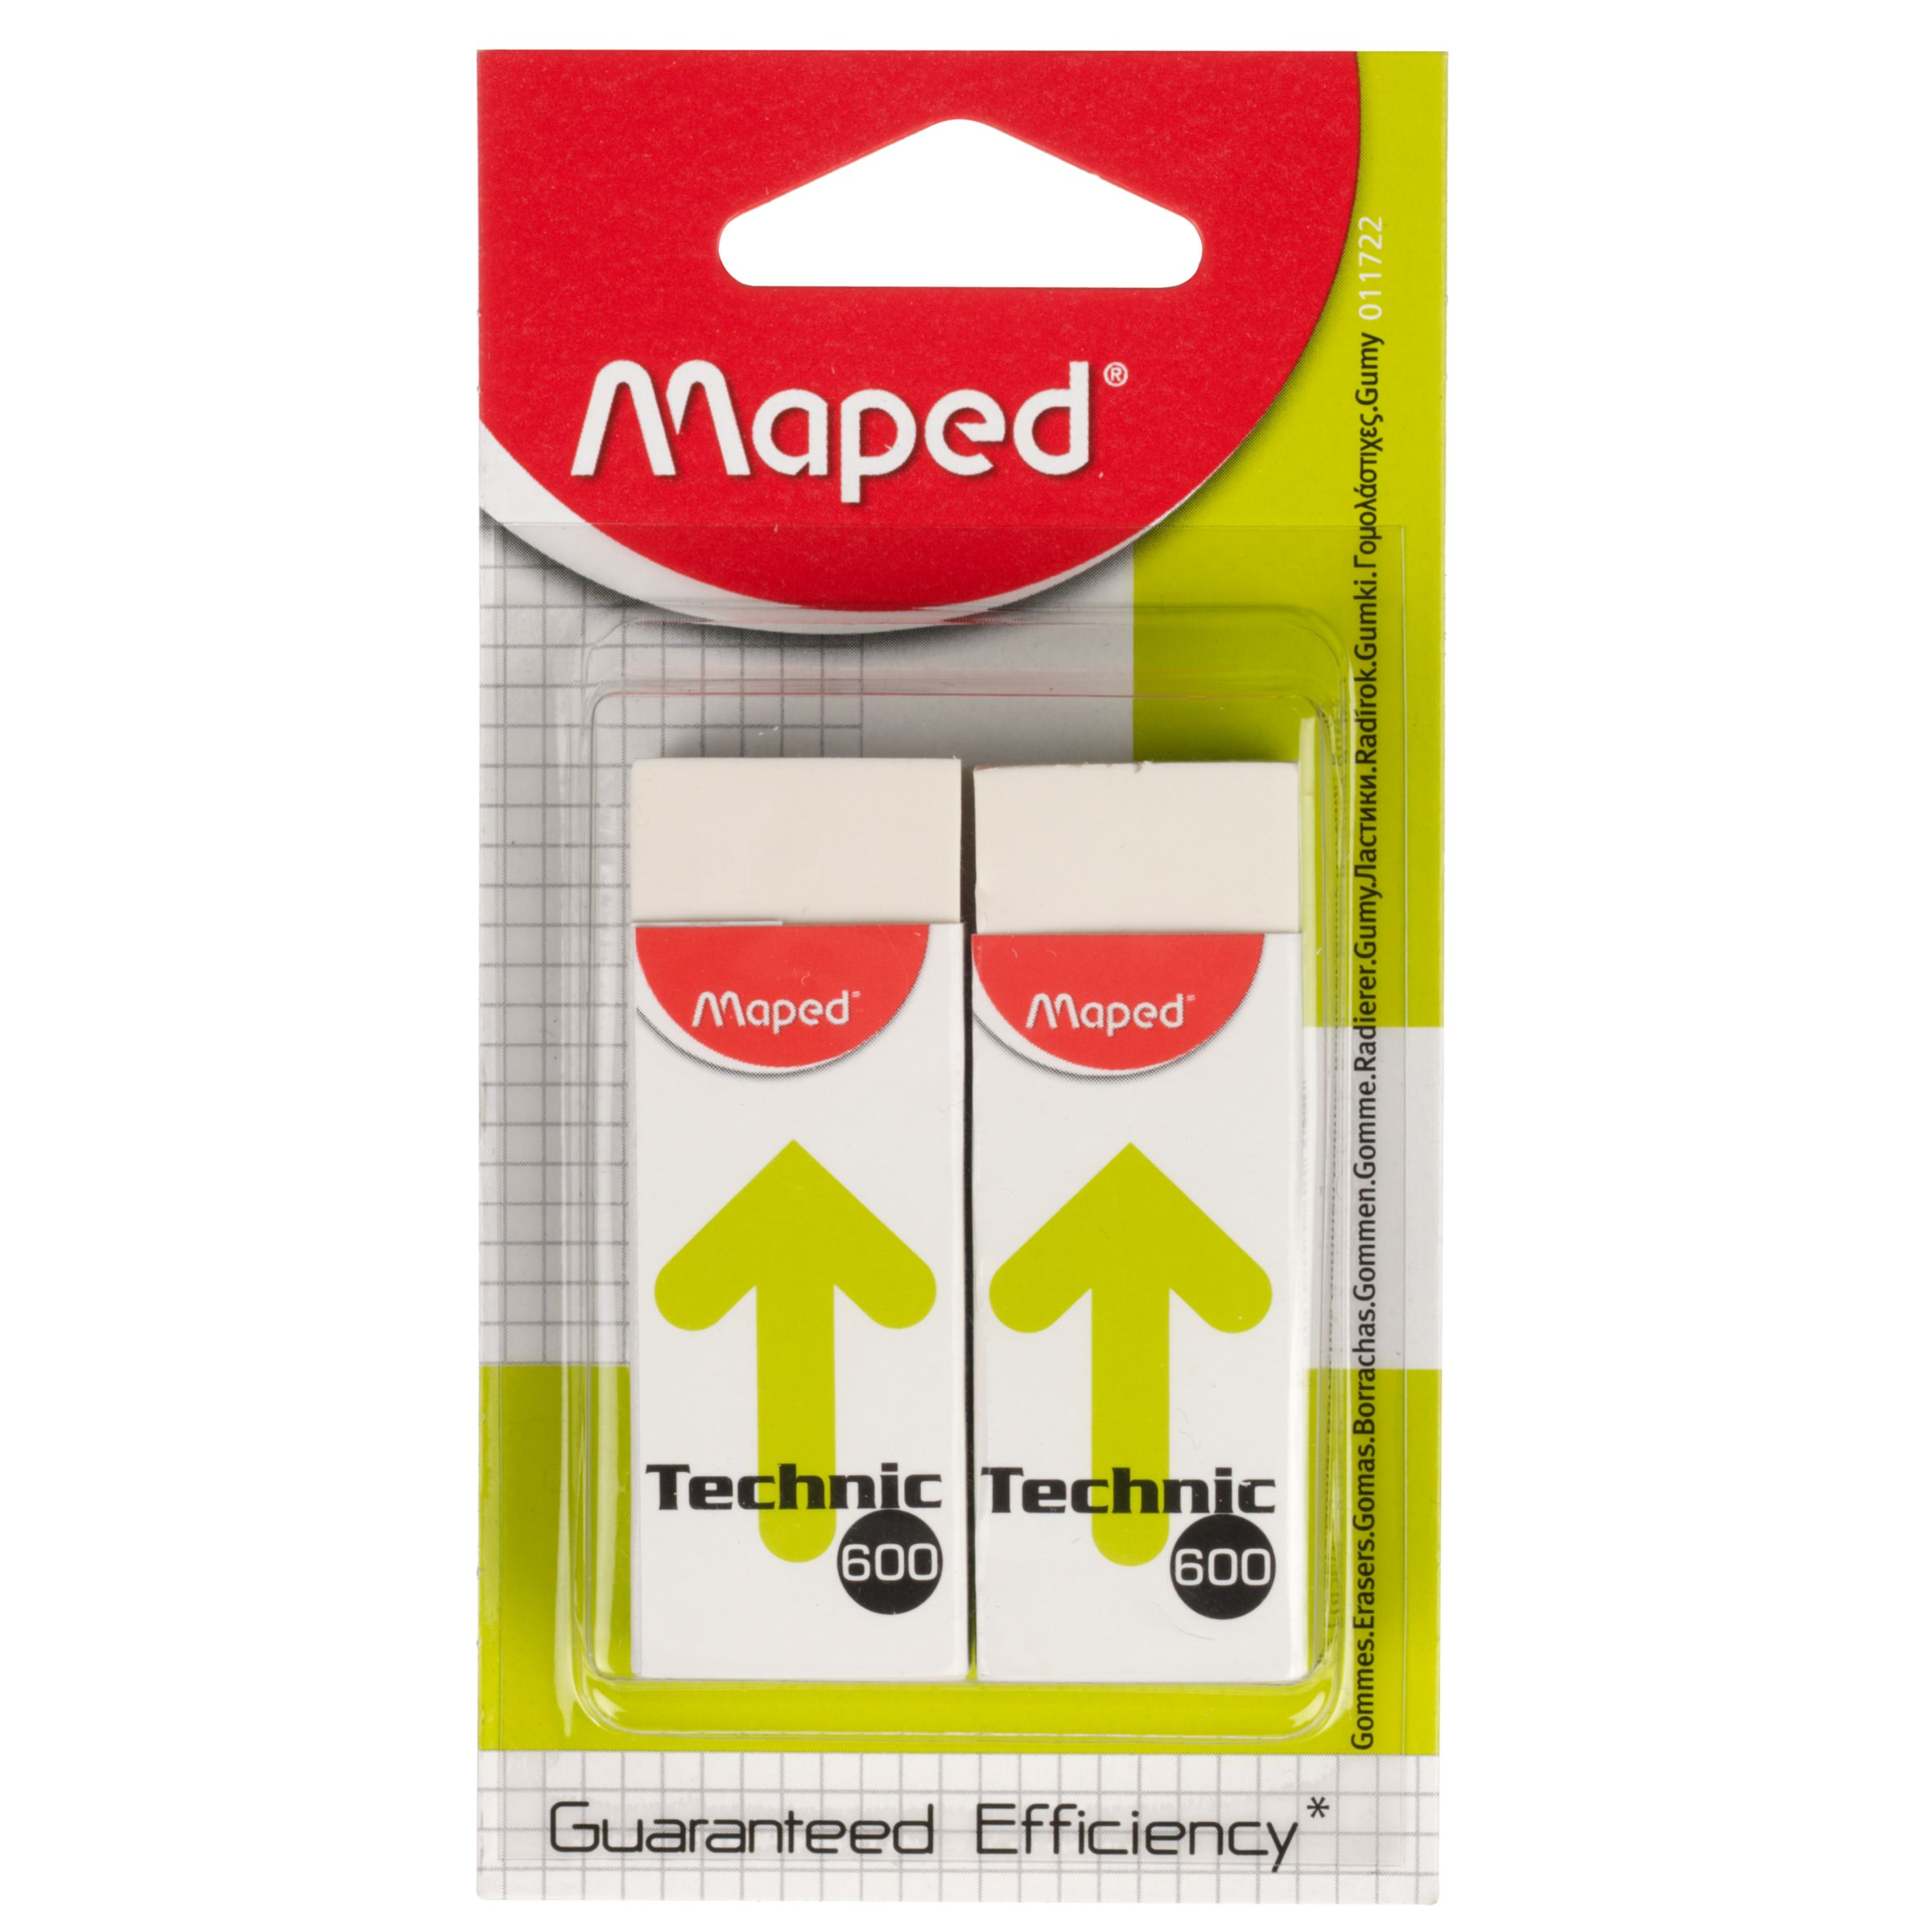 Maped Maped Technic Eraser, Pack of 2